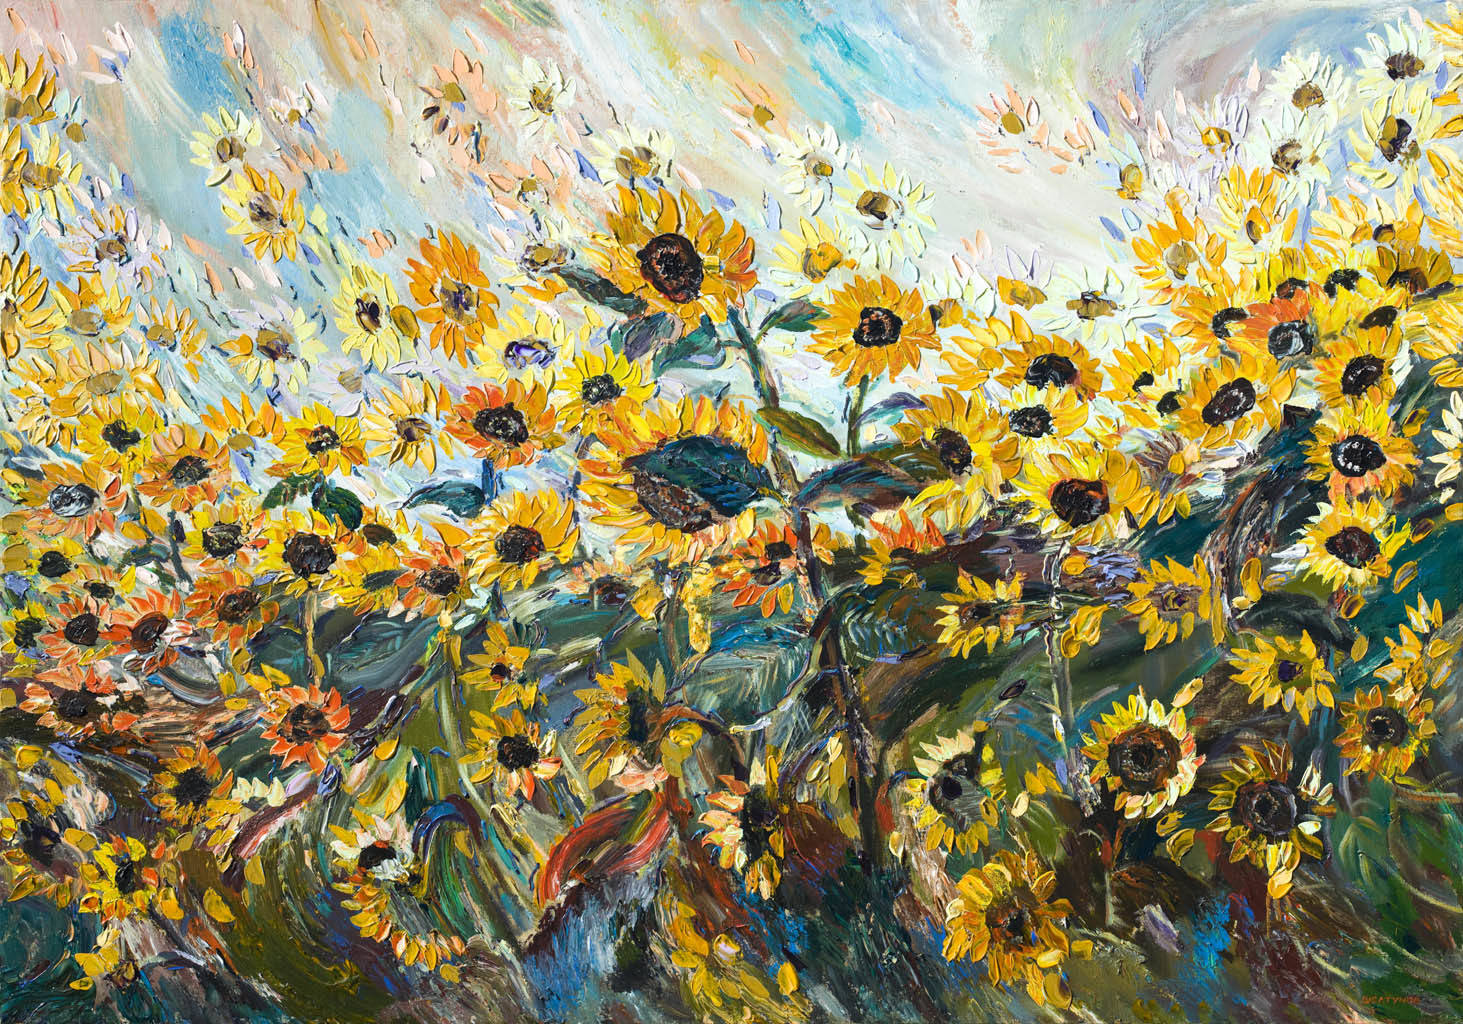 Alexander Sheltunov. Sunflowers 向阳花 2005 Oil on canvas 油画底布 140 × 200